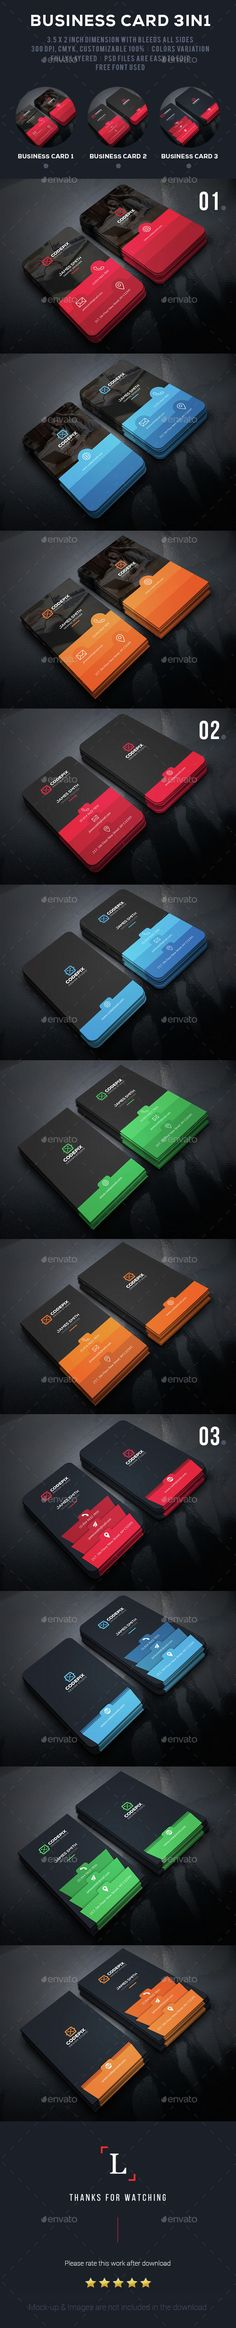 Color Shade Business Card Bundle — Photoshop PSD #photography #pack • Available here → https://graphicriver.net/item/color-shade-business-card-bundle/15105498?ref=pxcr